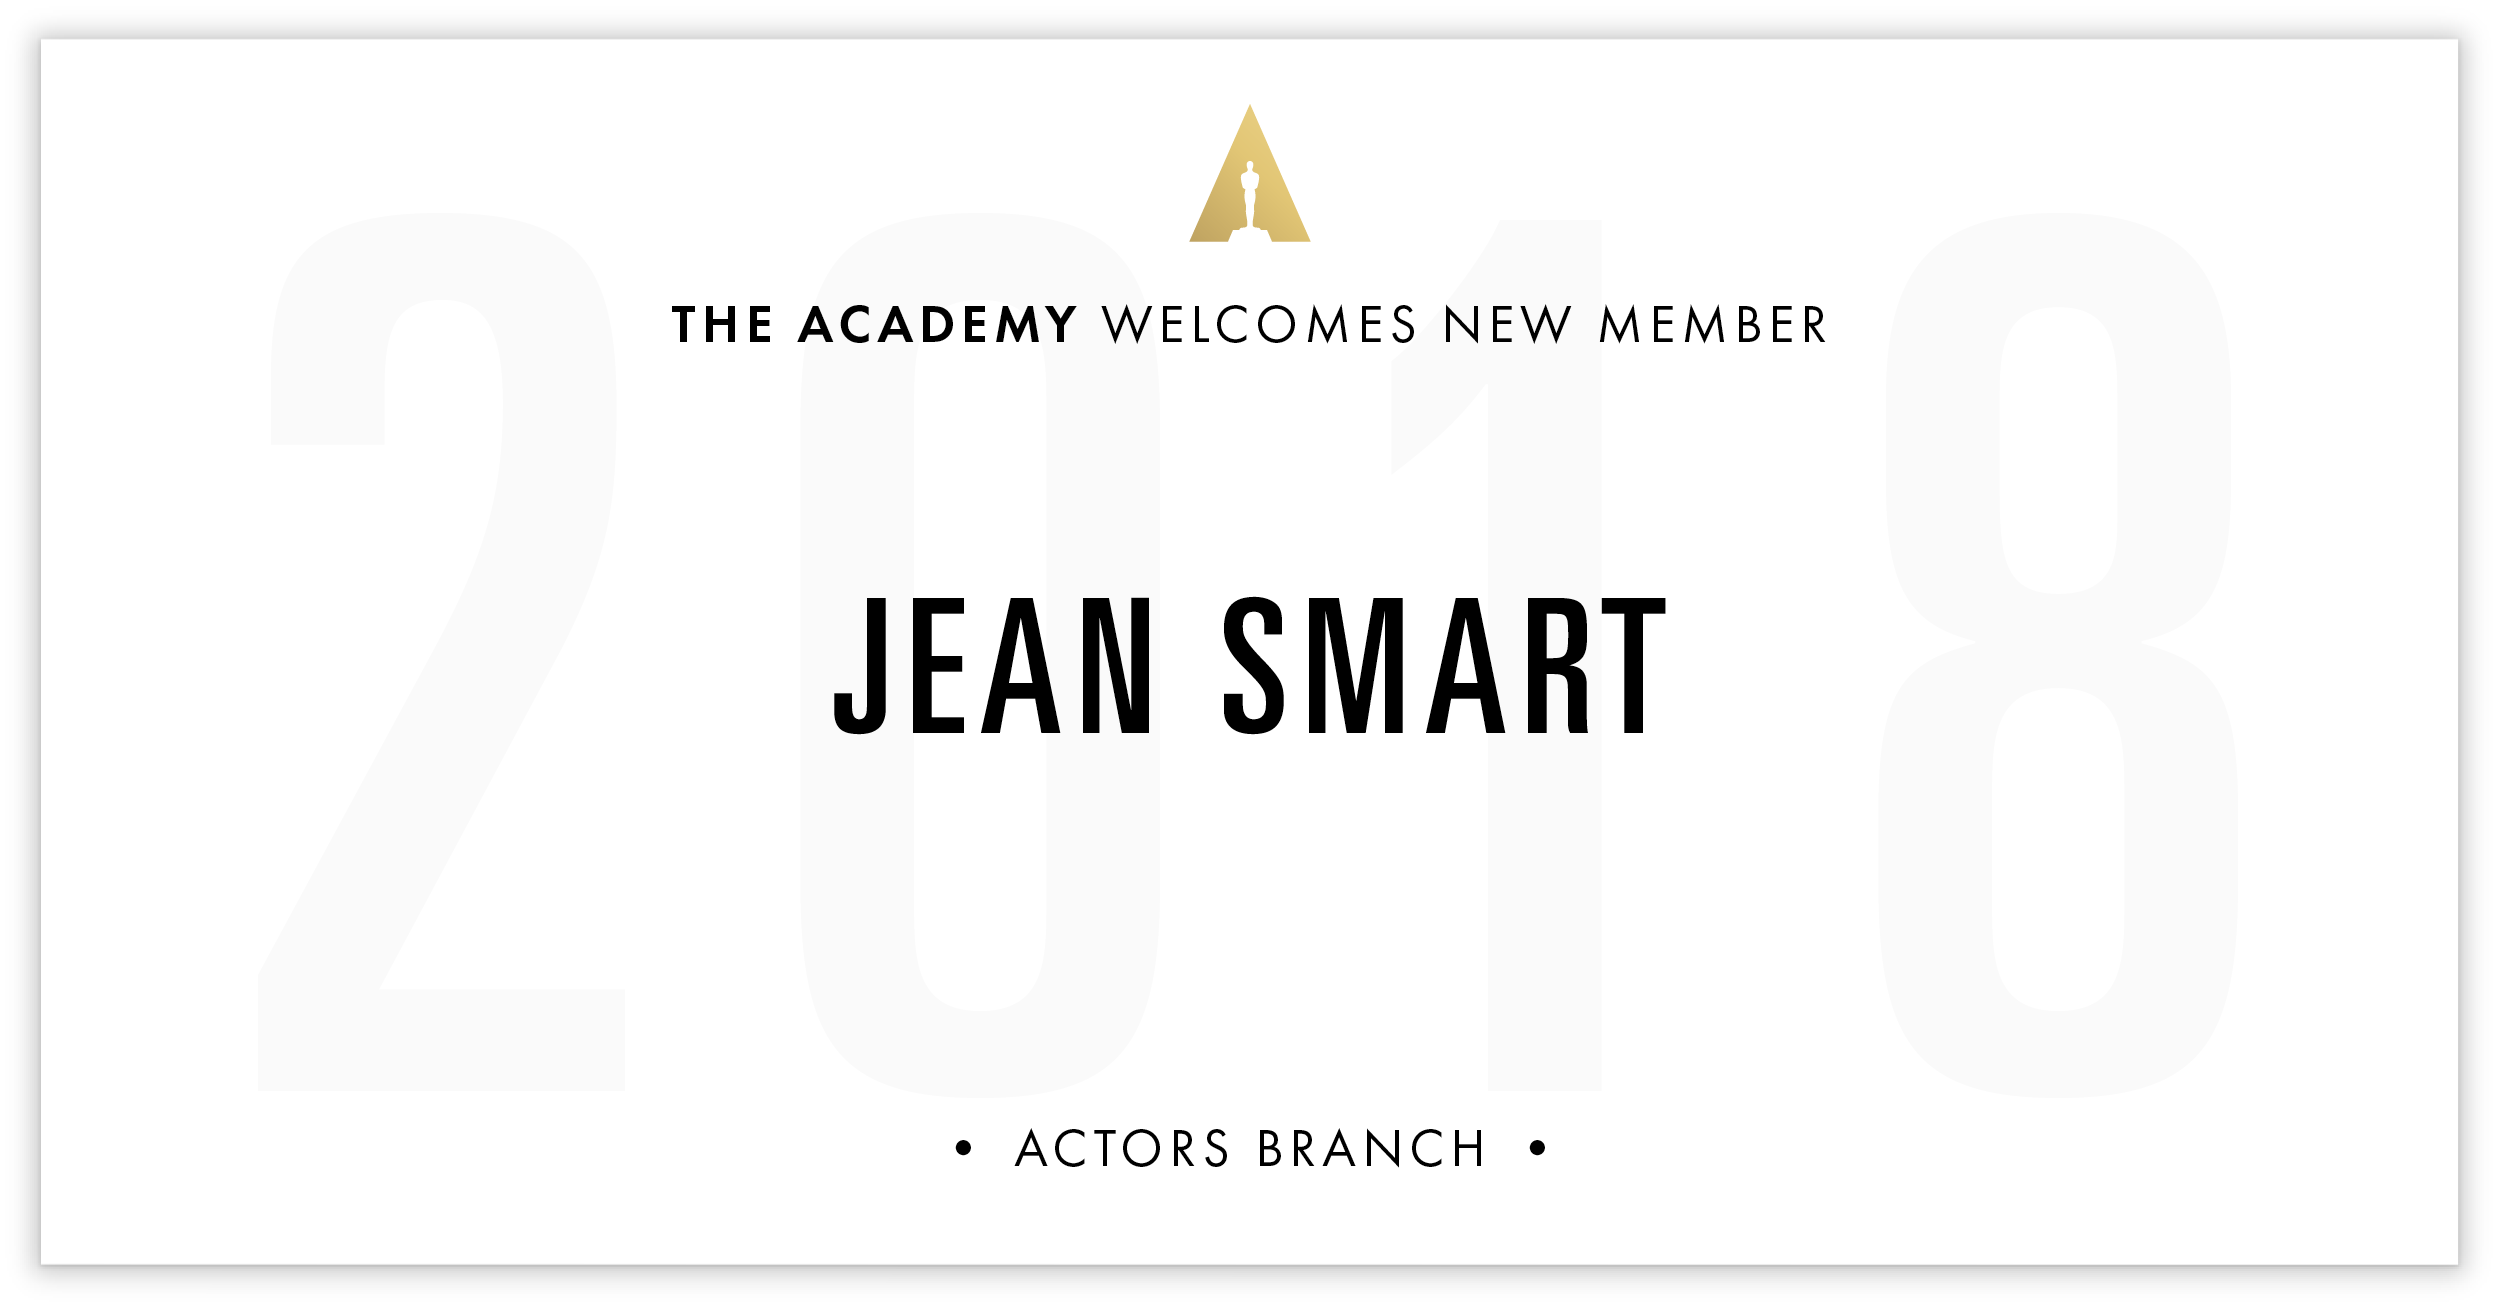 Jean Smart is invited!